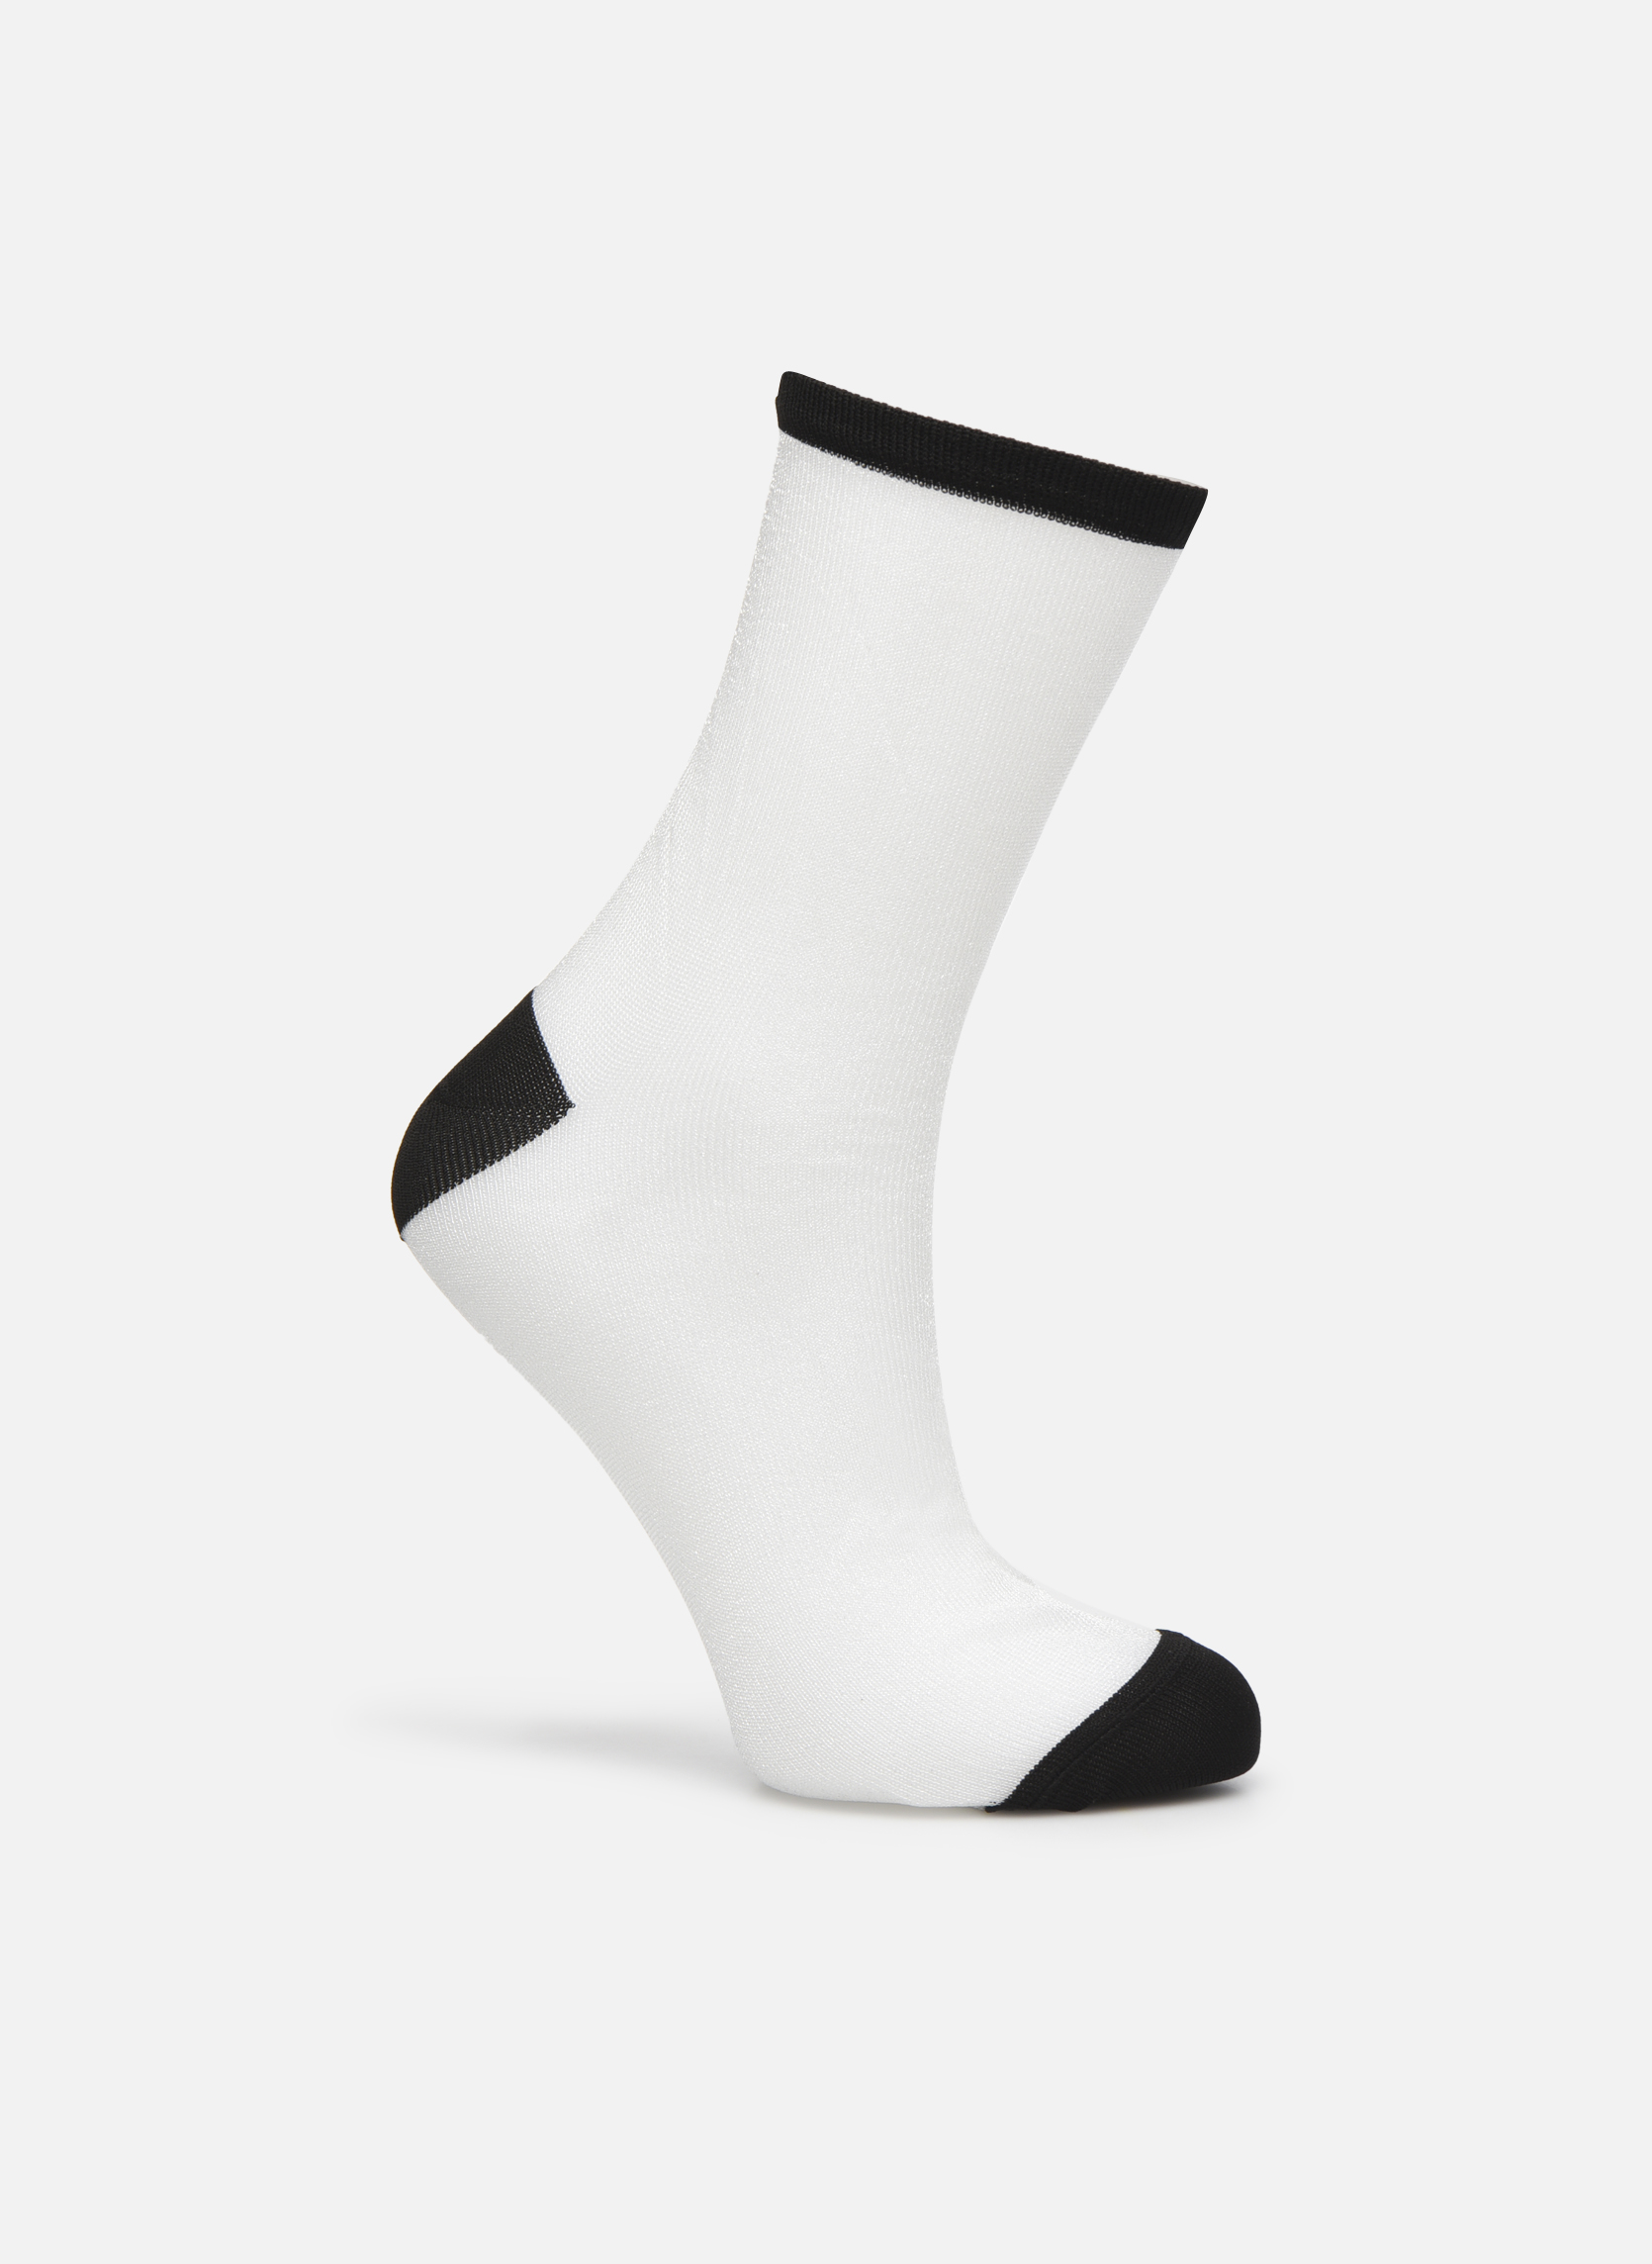 Socks & tights Sarenza Wear Chaussettes transparente Femme White detailed view/ Pair view